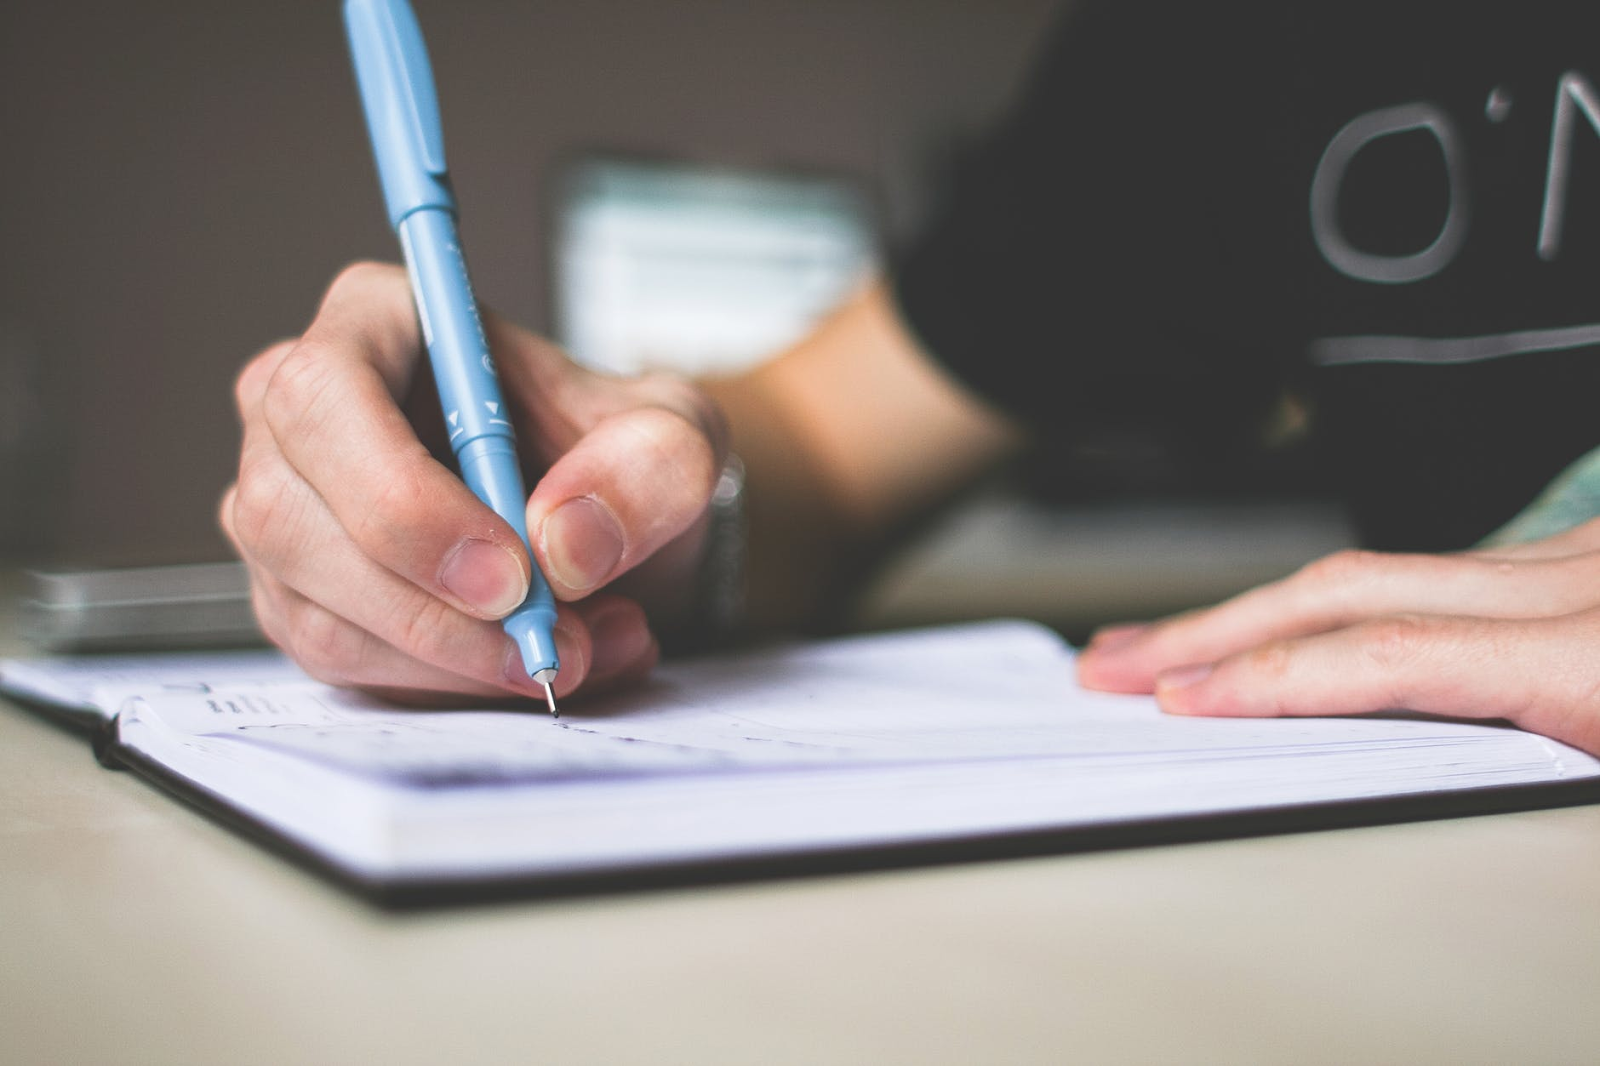 How to write an essay outline fast